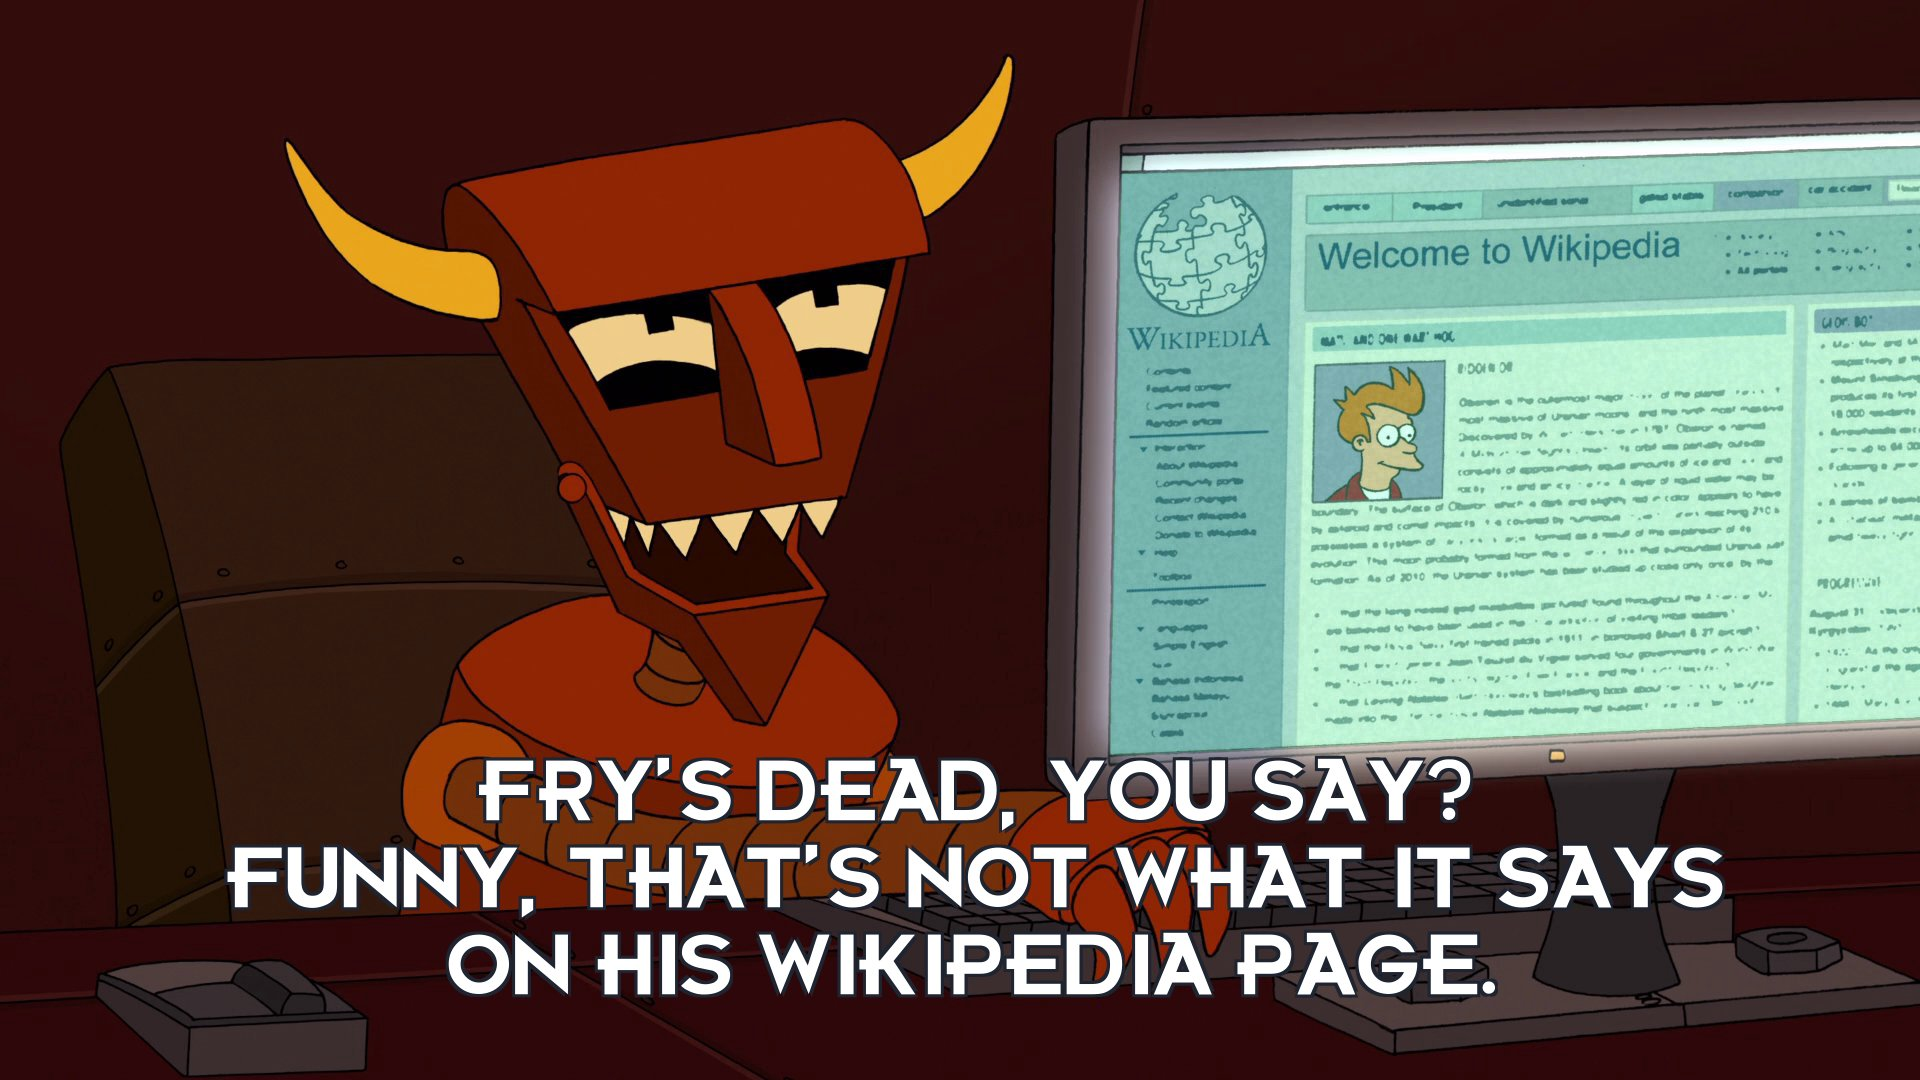 Robot Devil: Fry's dead, you say? Funny, that's not what it says on his Wikipedia page.